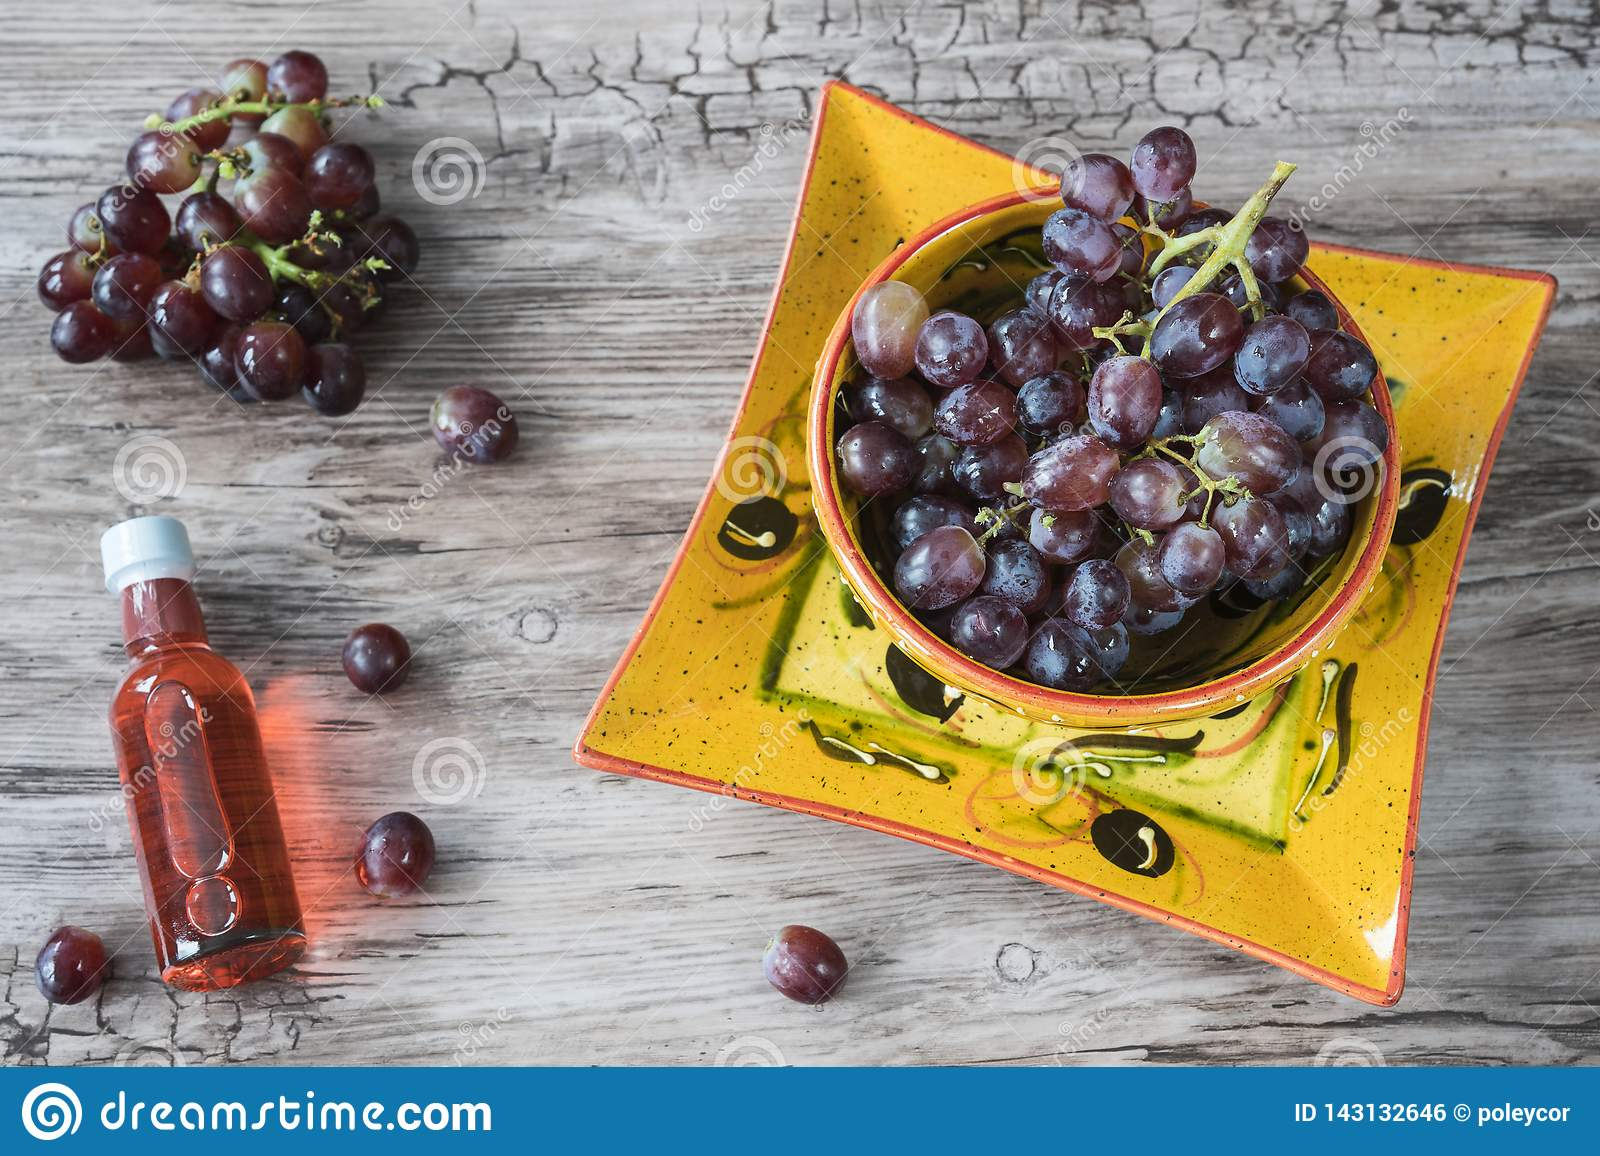 Bunch of red grapes in orange bowl, against wooden background